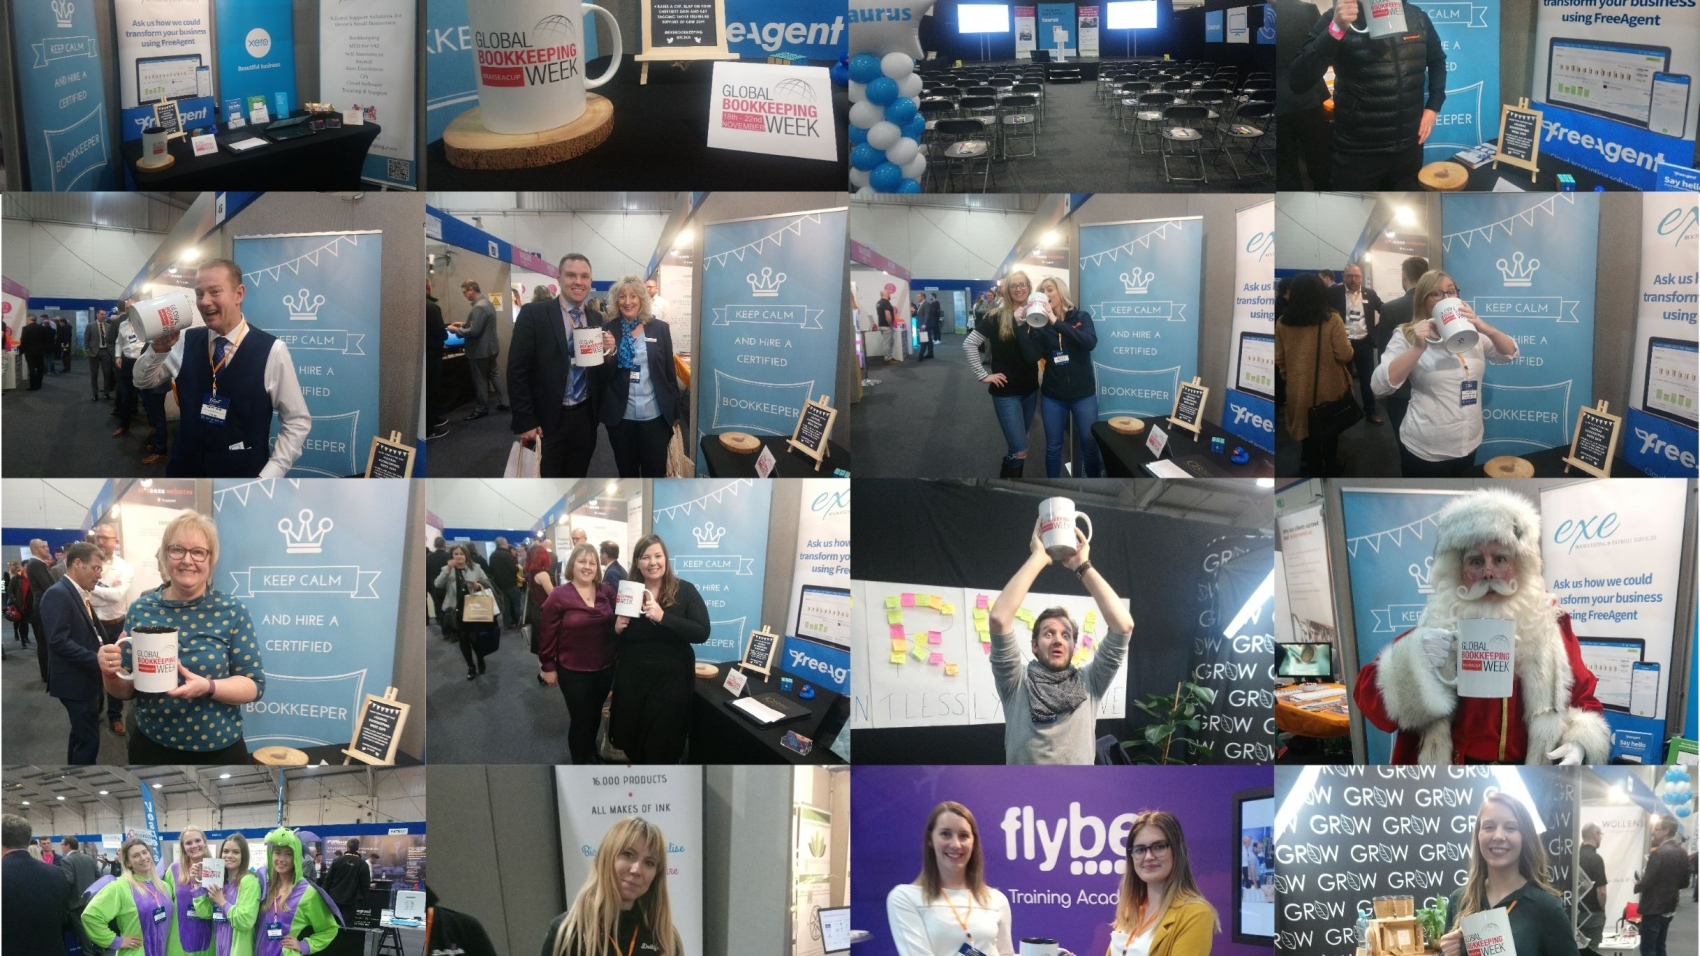 sw-business-expo-exe-bookkeeping-raise-a-cup